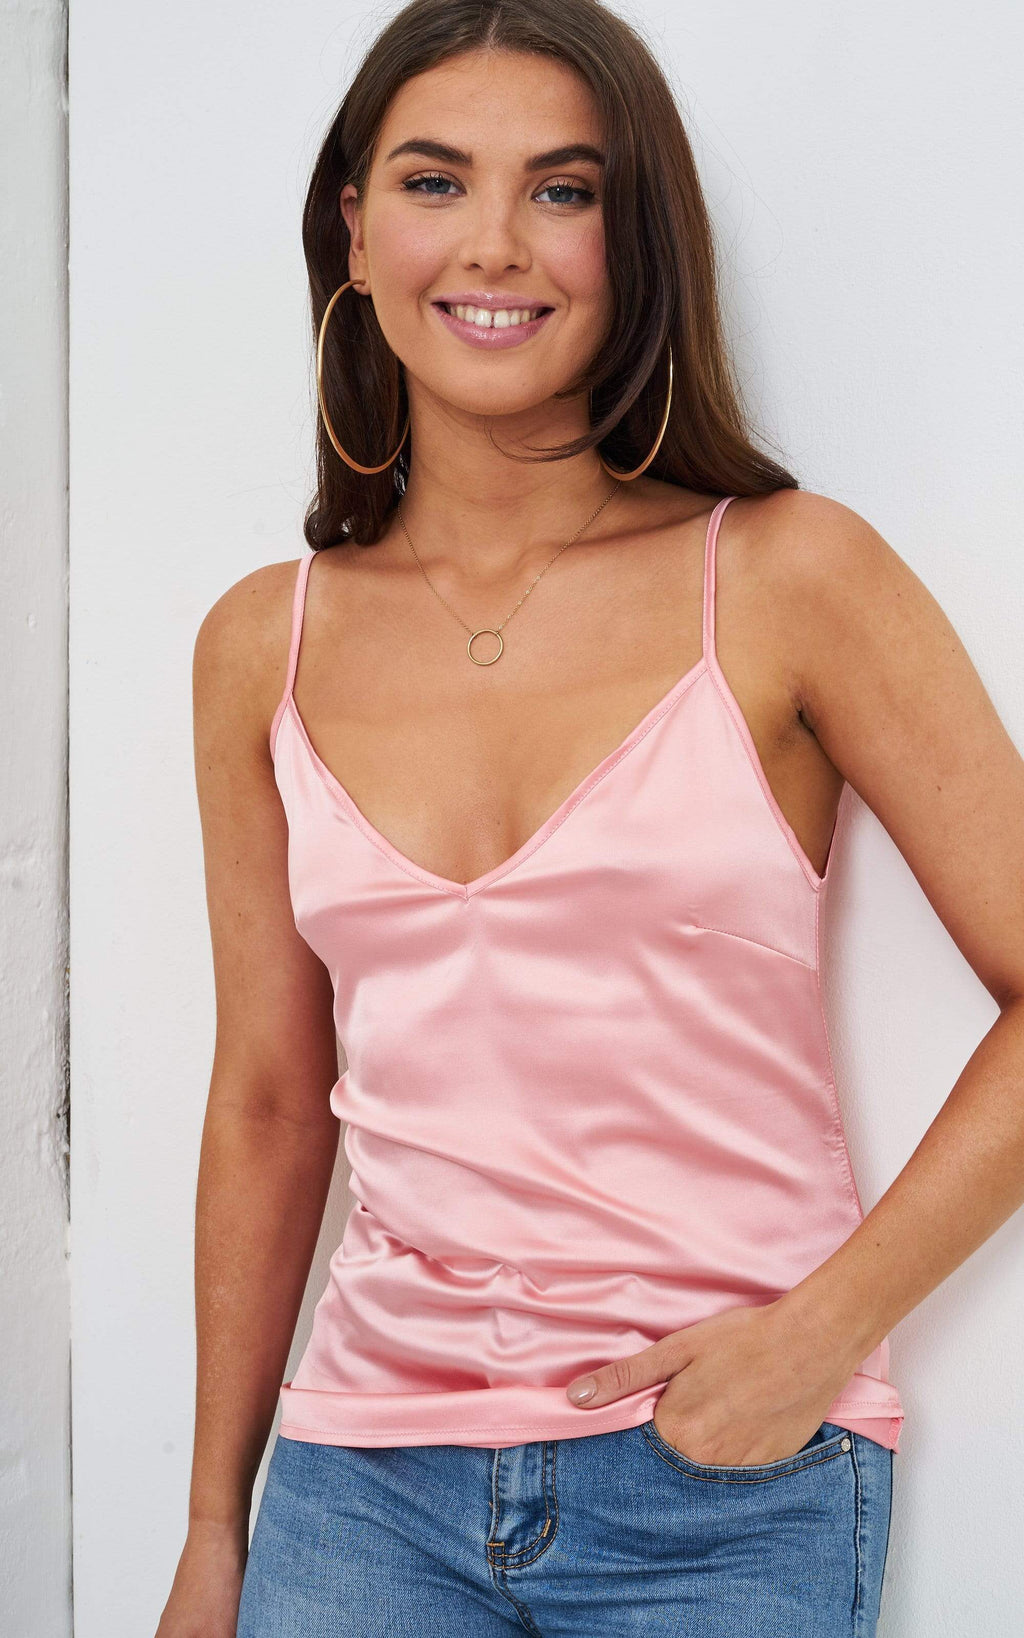 Lucie Pale Pink Satin Cami Top - love frontrow